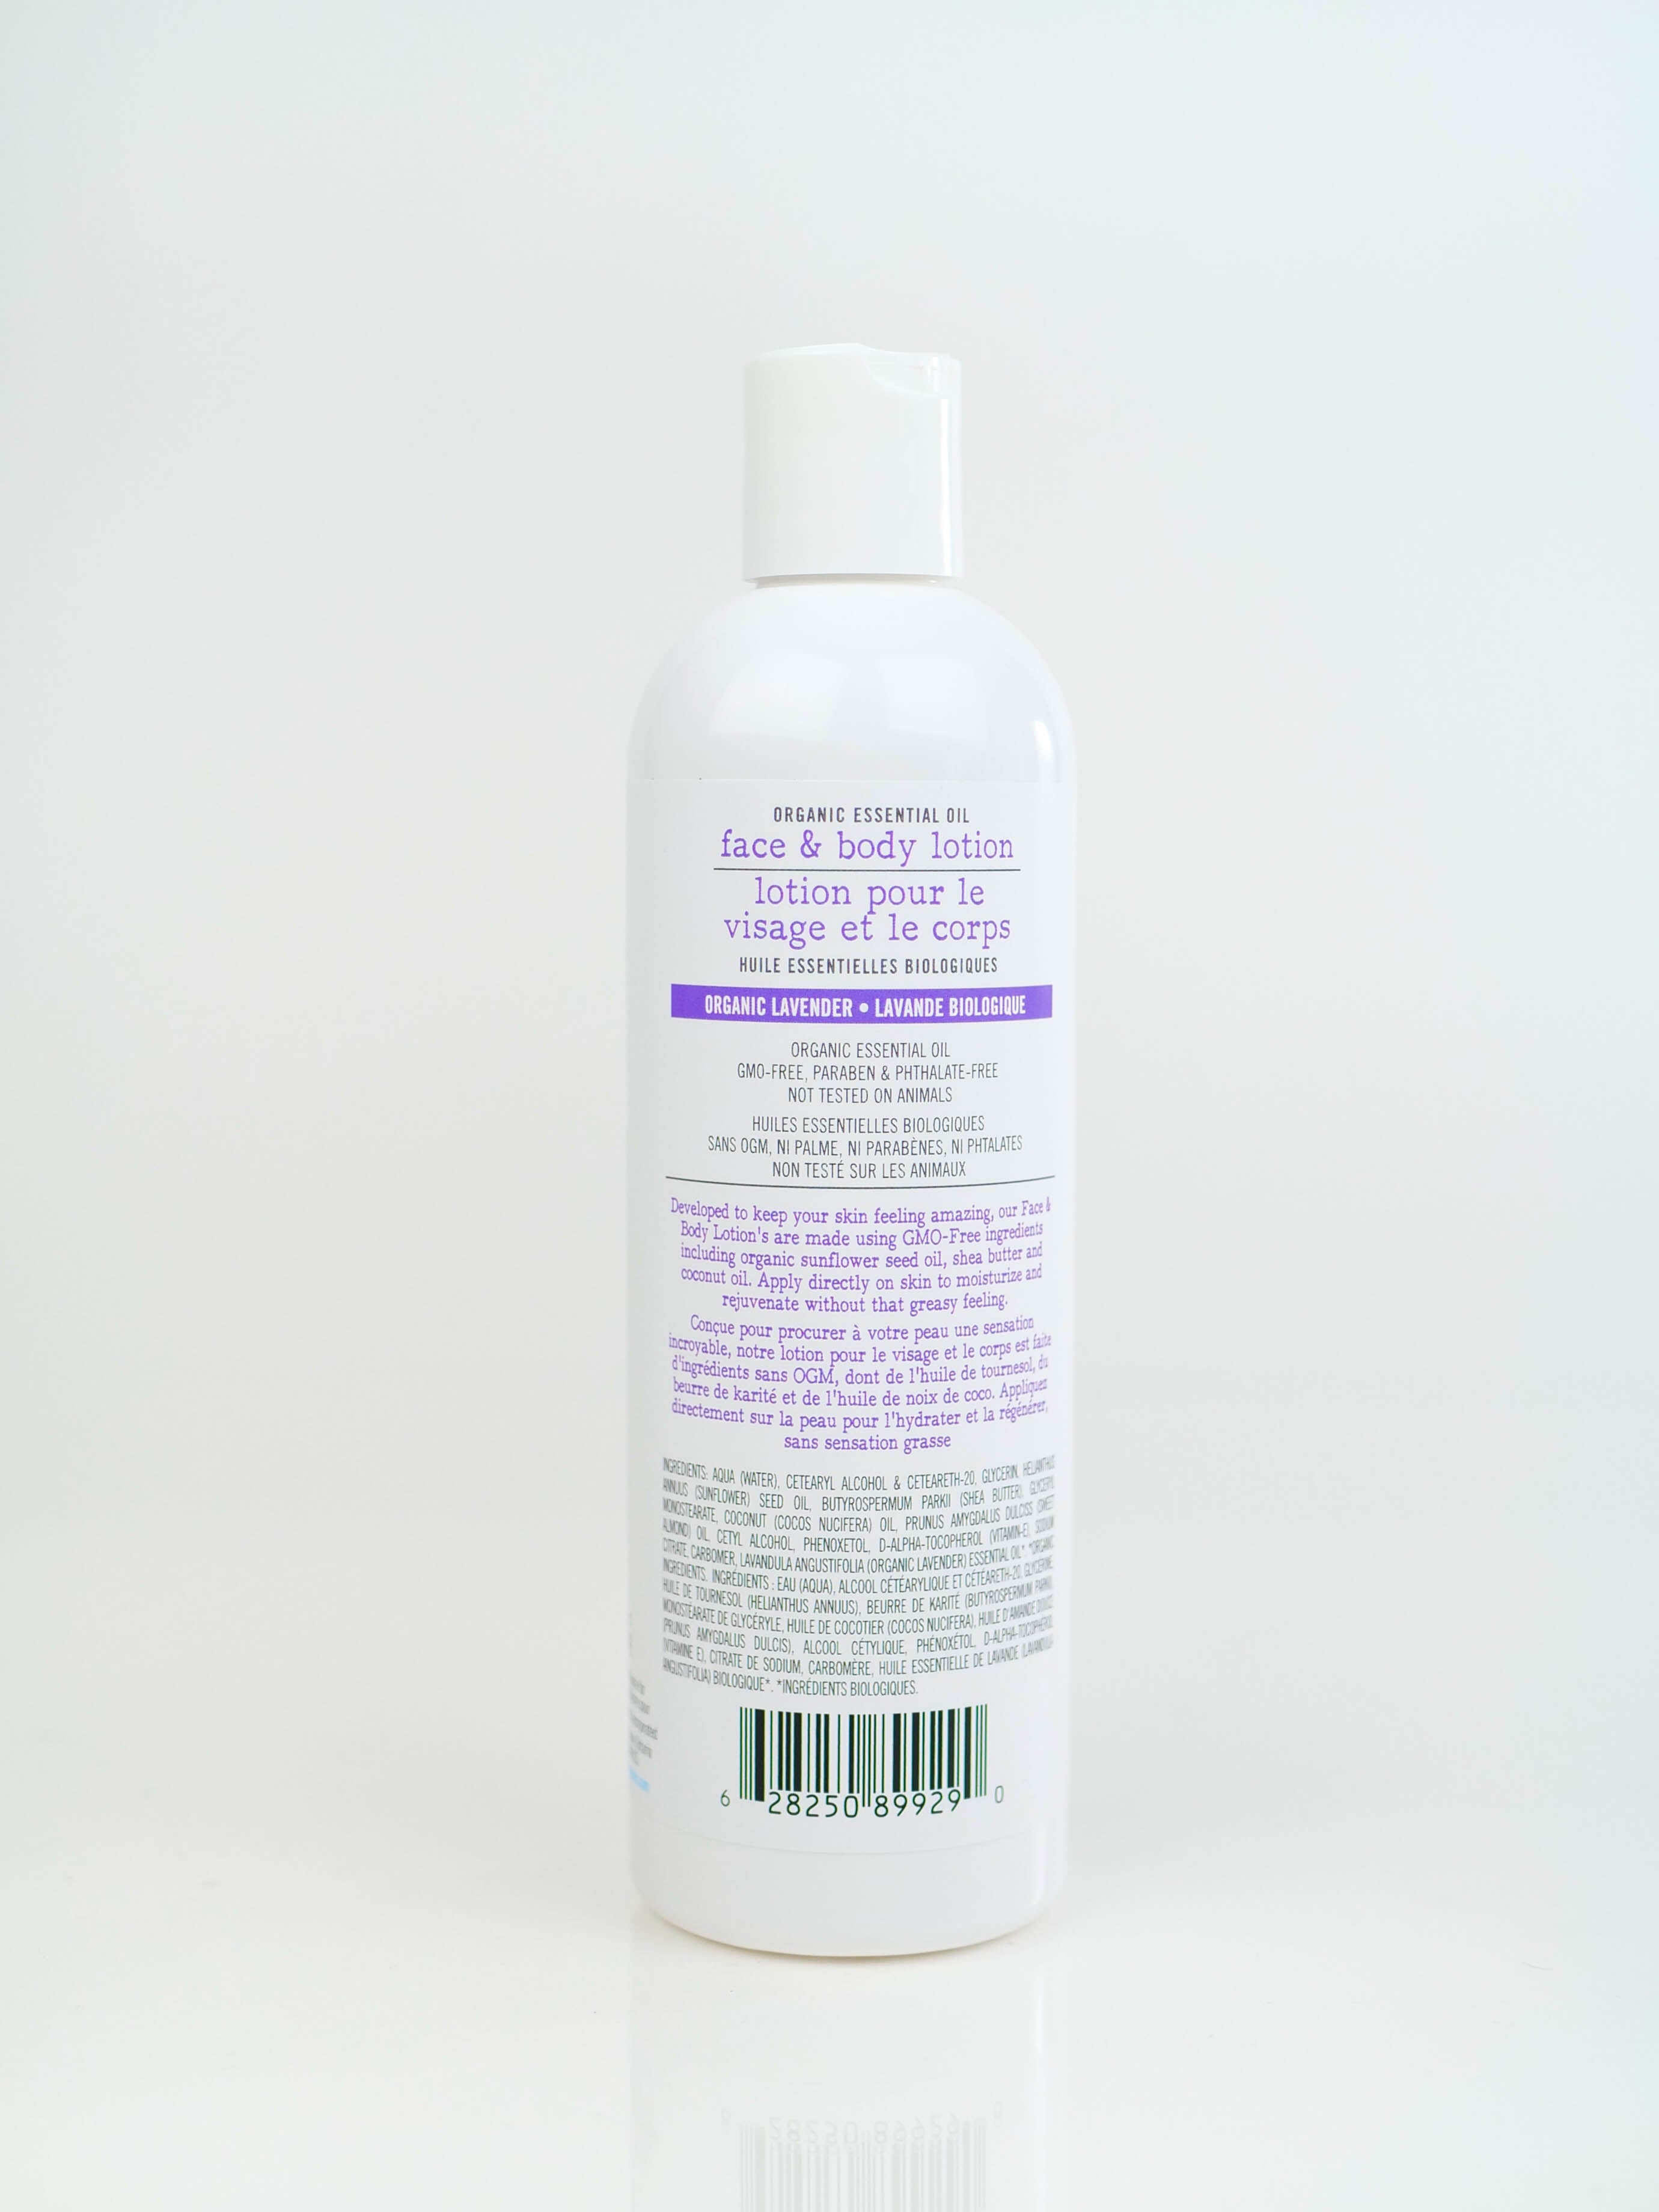 Organic Essential Oil Face & Body Lotion | Organic Lavender Essential Oil | 360ml